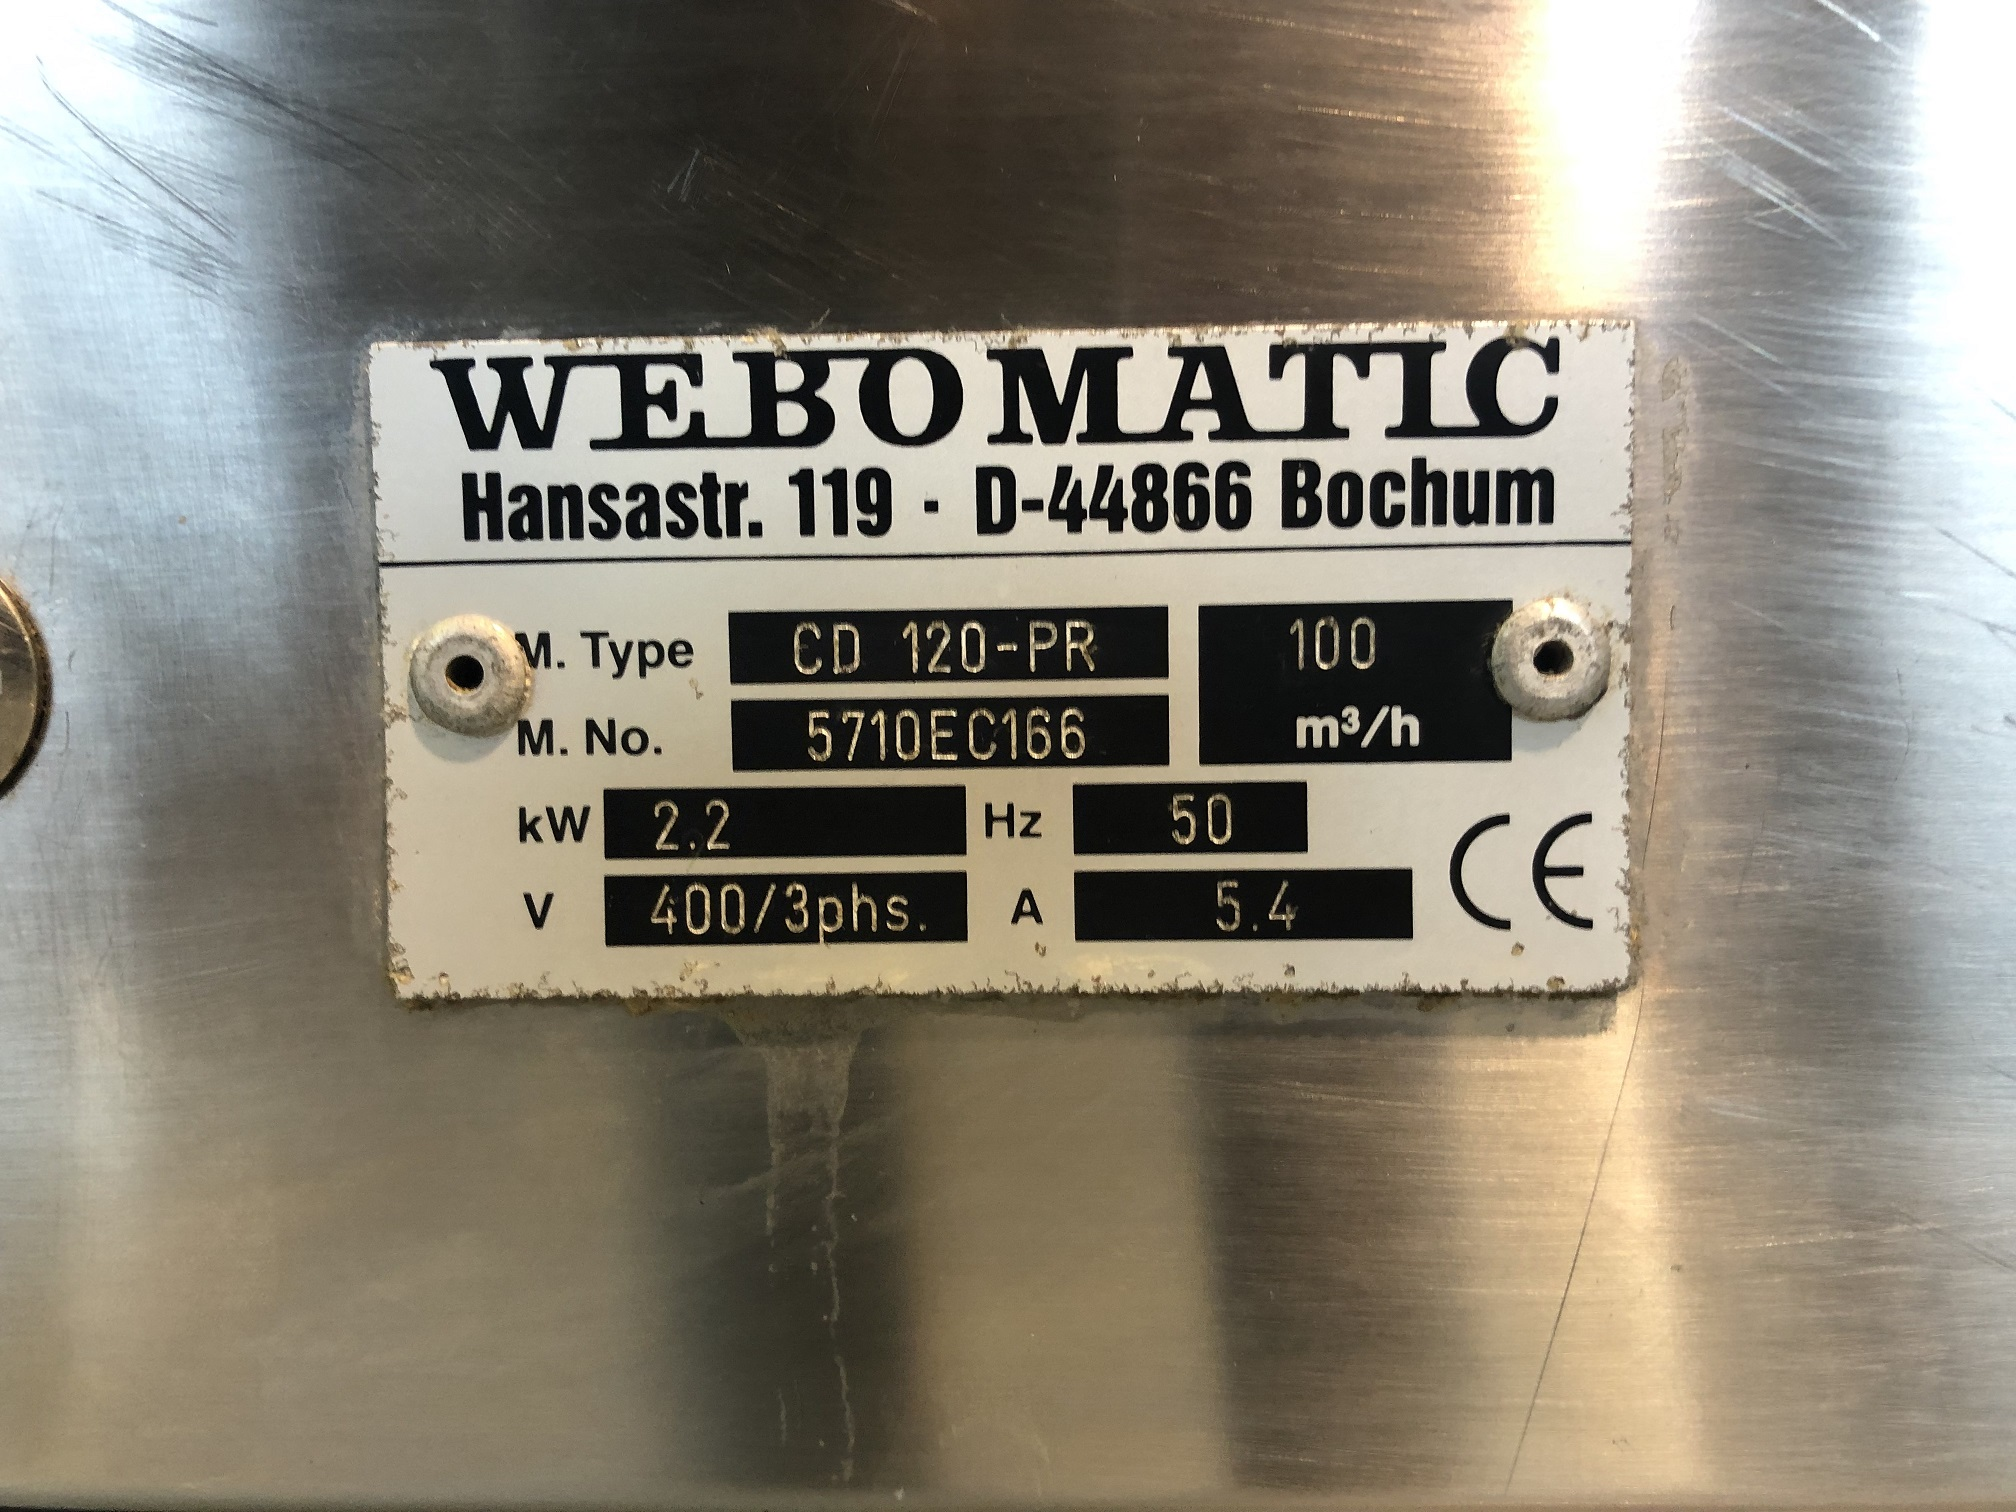 WEBOMATIC  CD120-PR